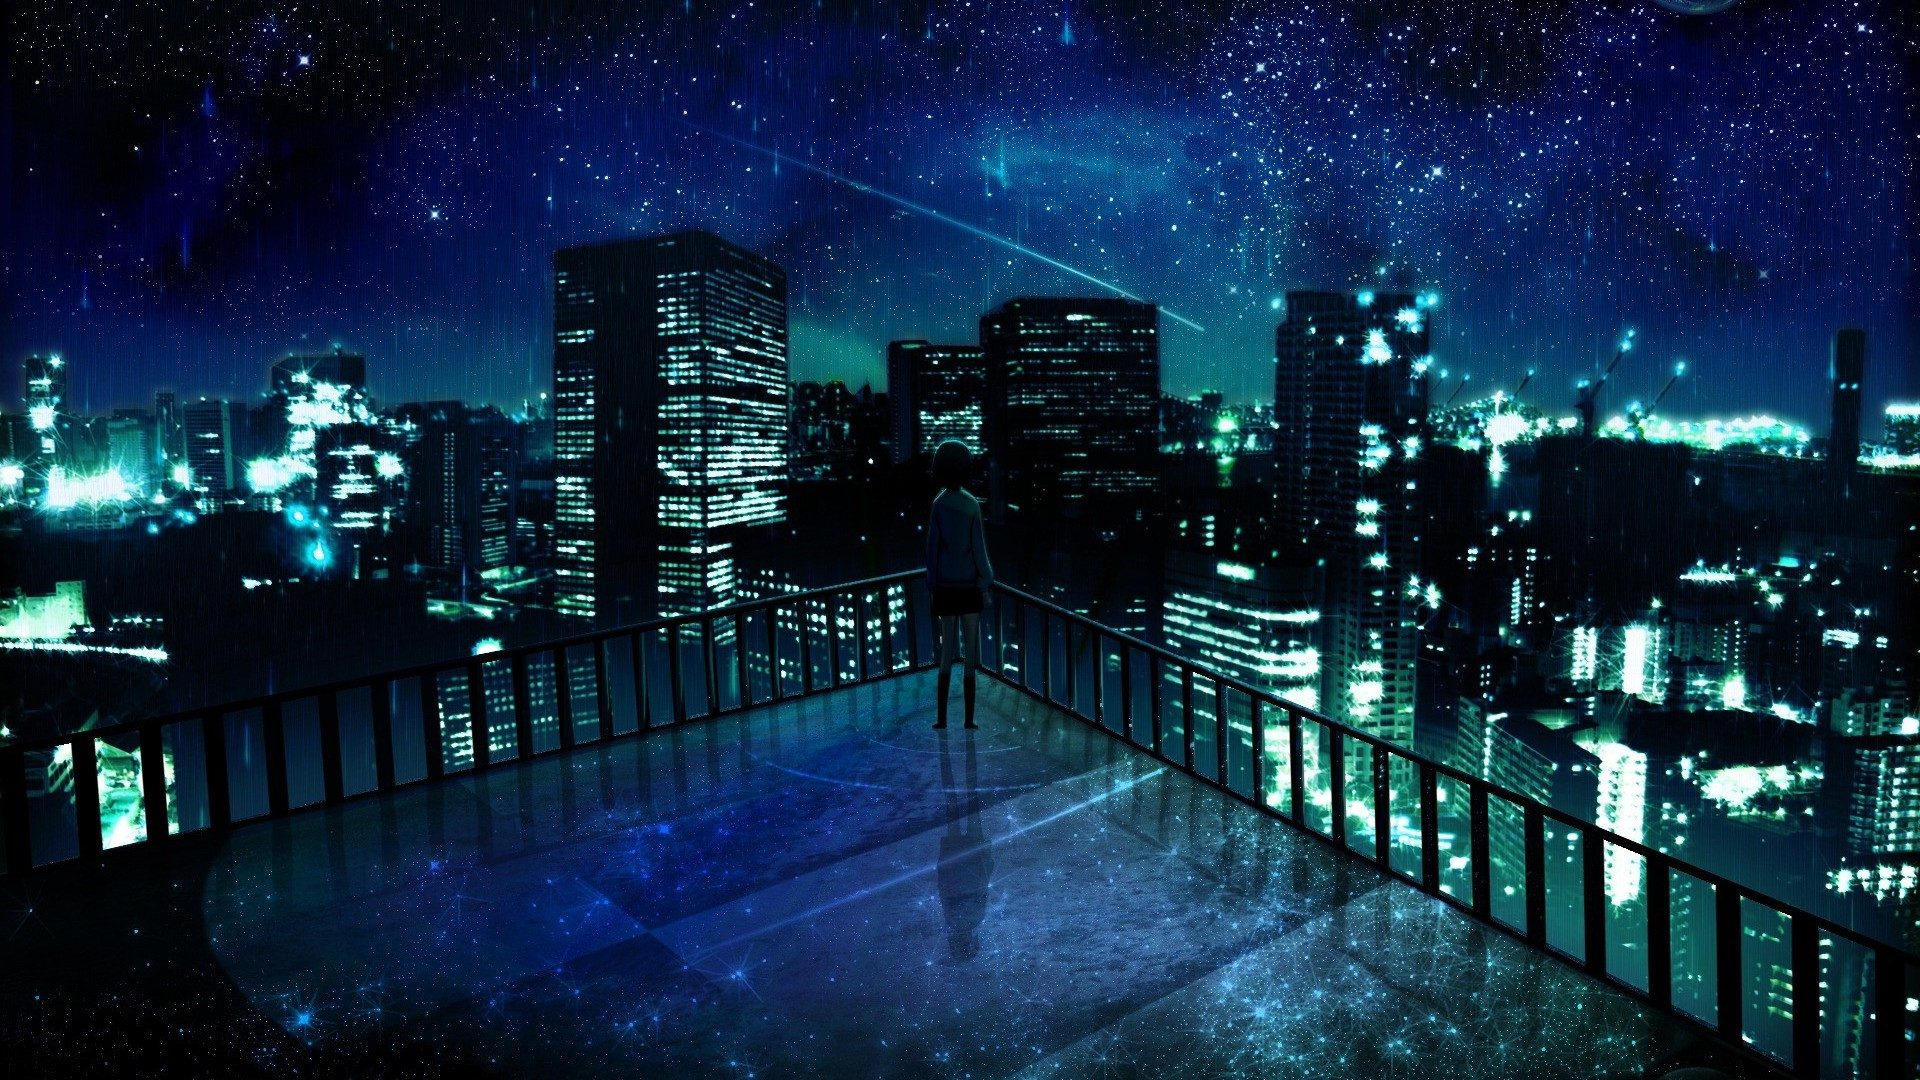 Download Stunning Anime City Wallpaper 42583 1920x1080 Px